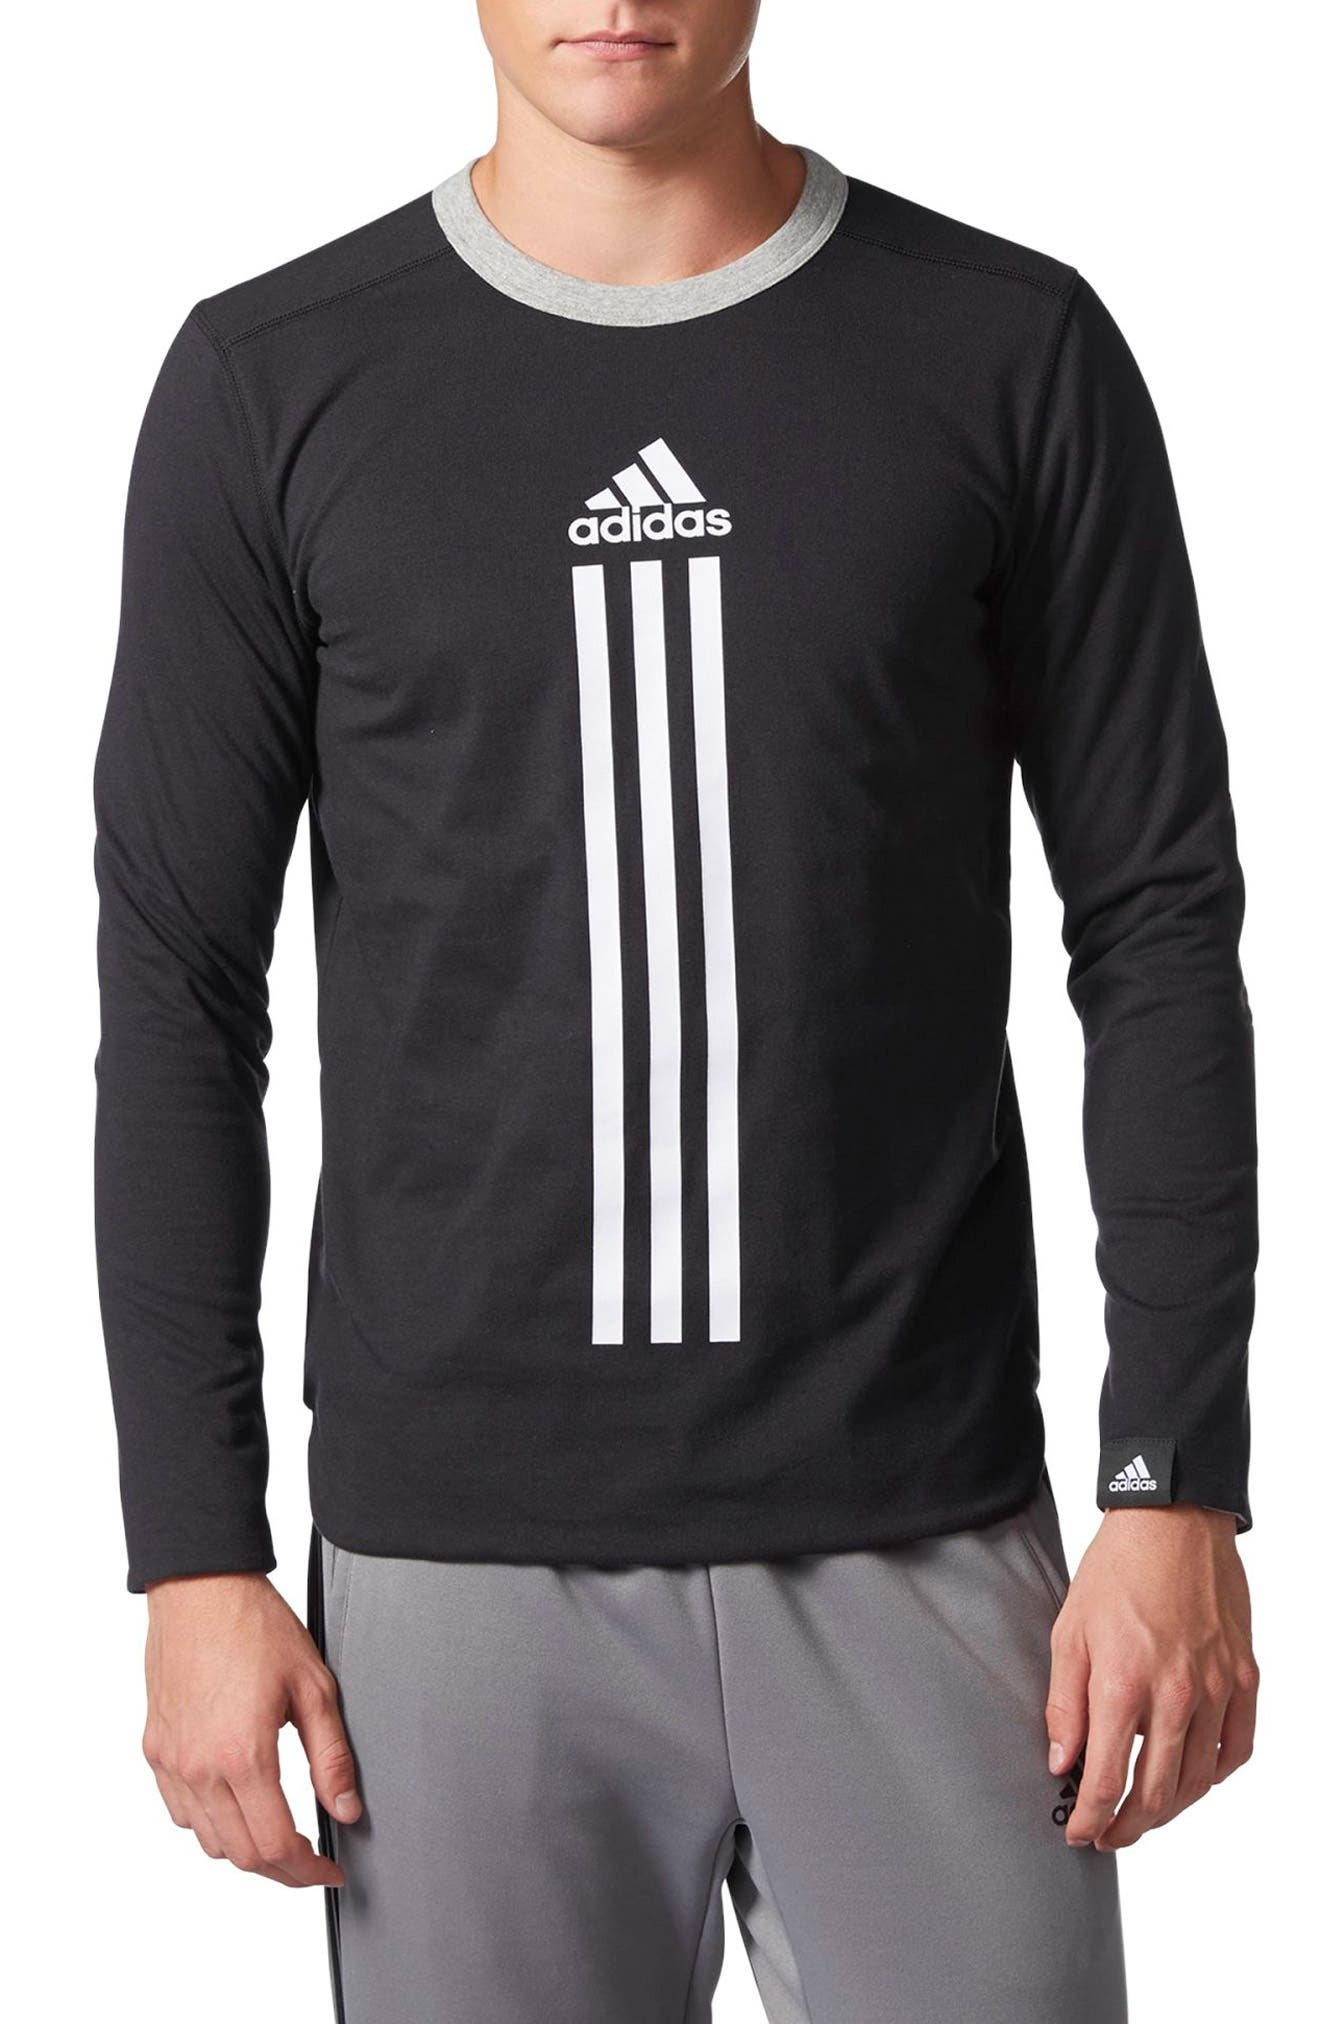 adidas ID Long Sleeve Performance T-Shirt